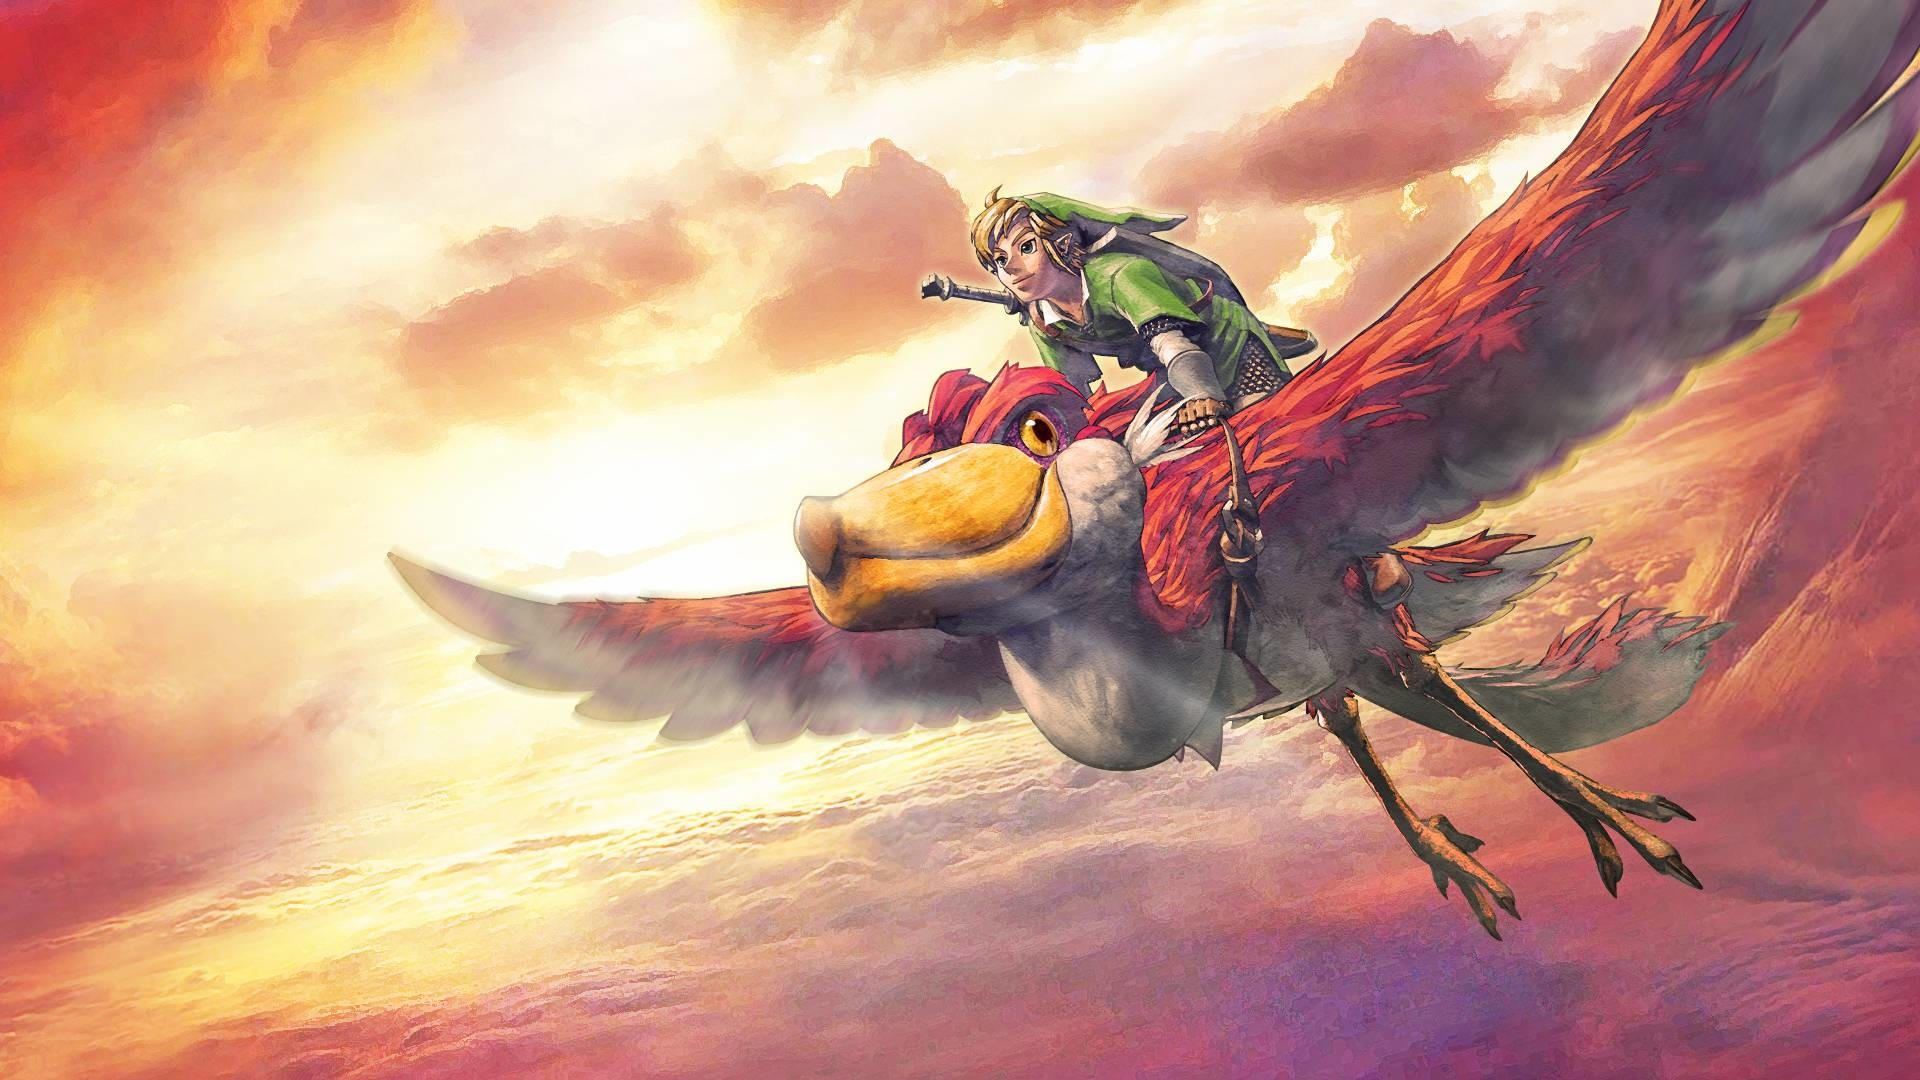 1920x1080 The Legend Of Zelda HD high quality wallpapers download